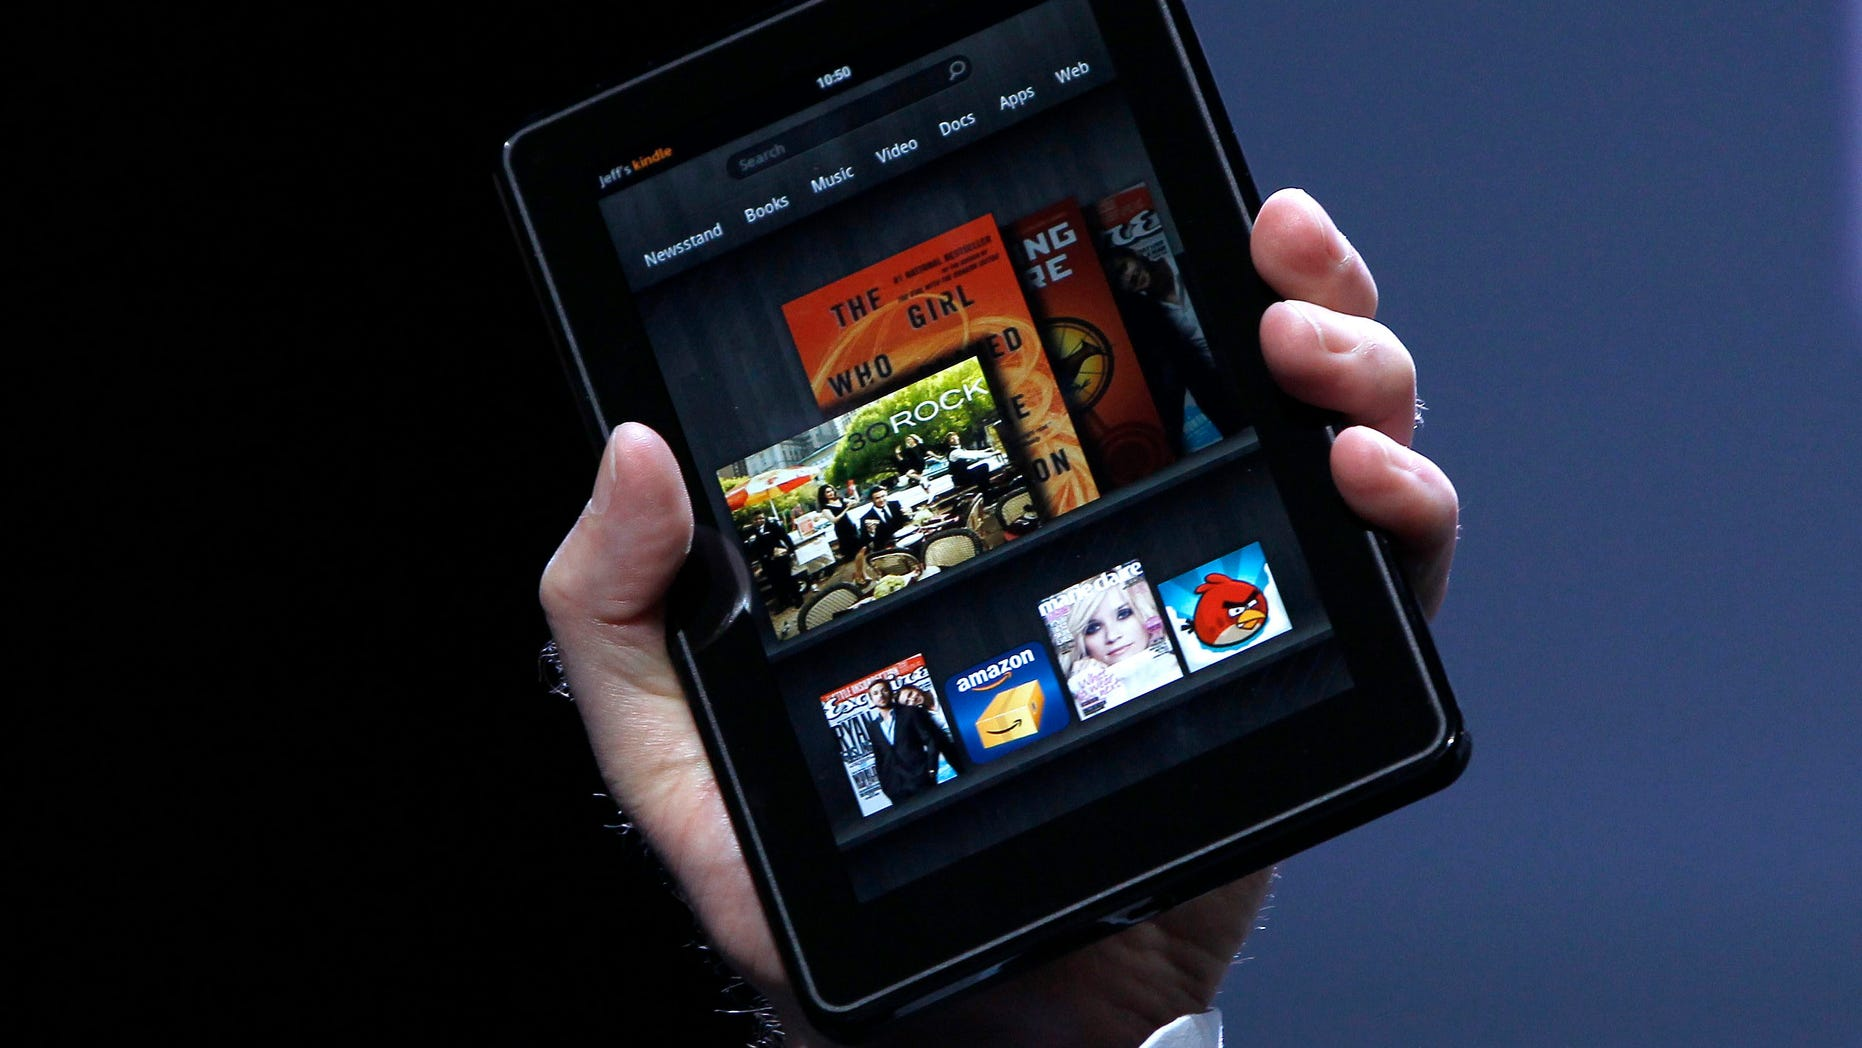 Amazon CEO Jeff Bezos holds up the new Kindle Fire at a news conference during the launch of Amazon's new tablets in New York, September 28, 2011. REUTERS/Shannon Stapleton (UNITED STATES - Tags: BUSINESS SCIENCE TECHNOLOGY) - RTR2RYAH